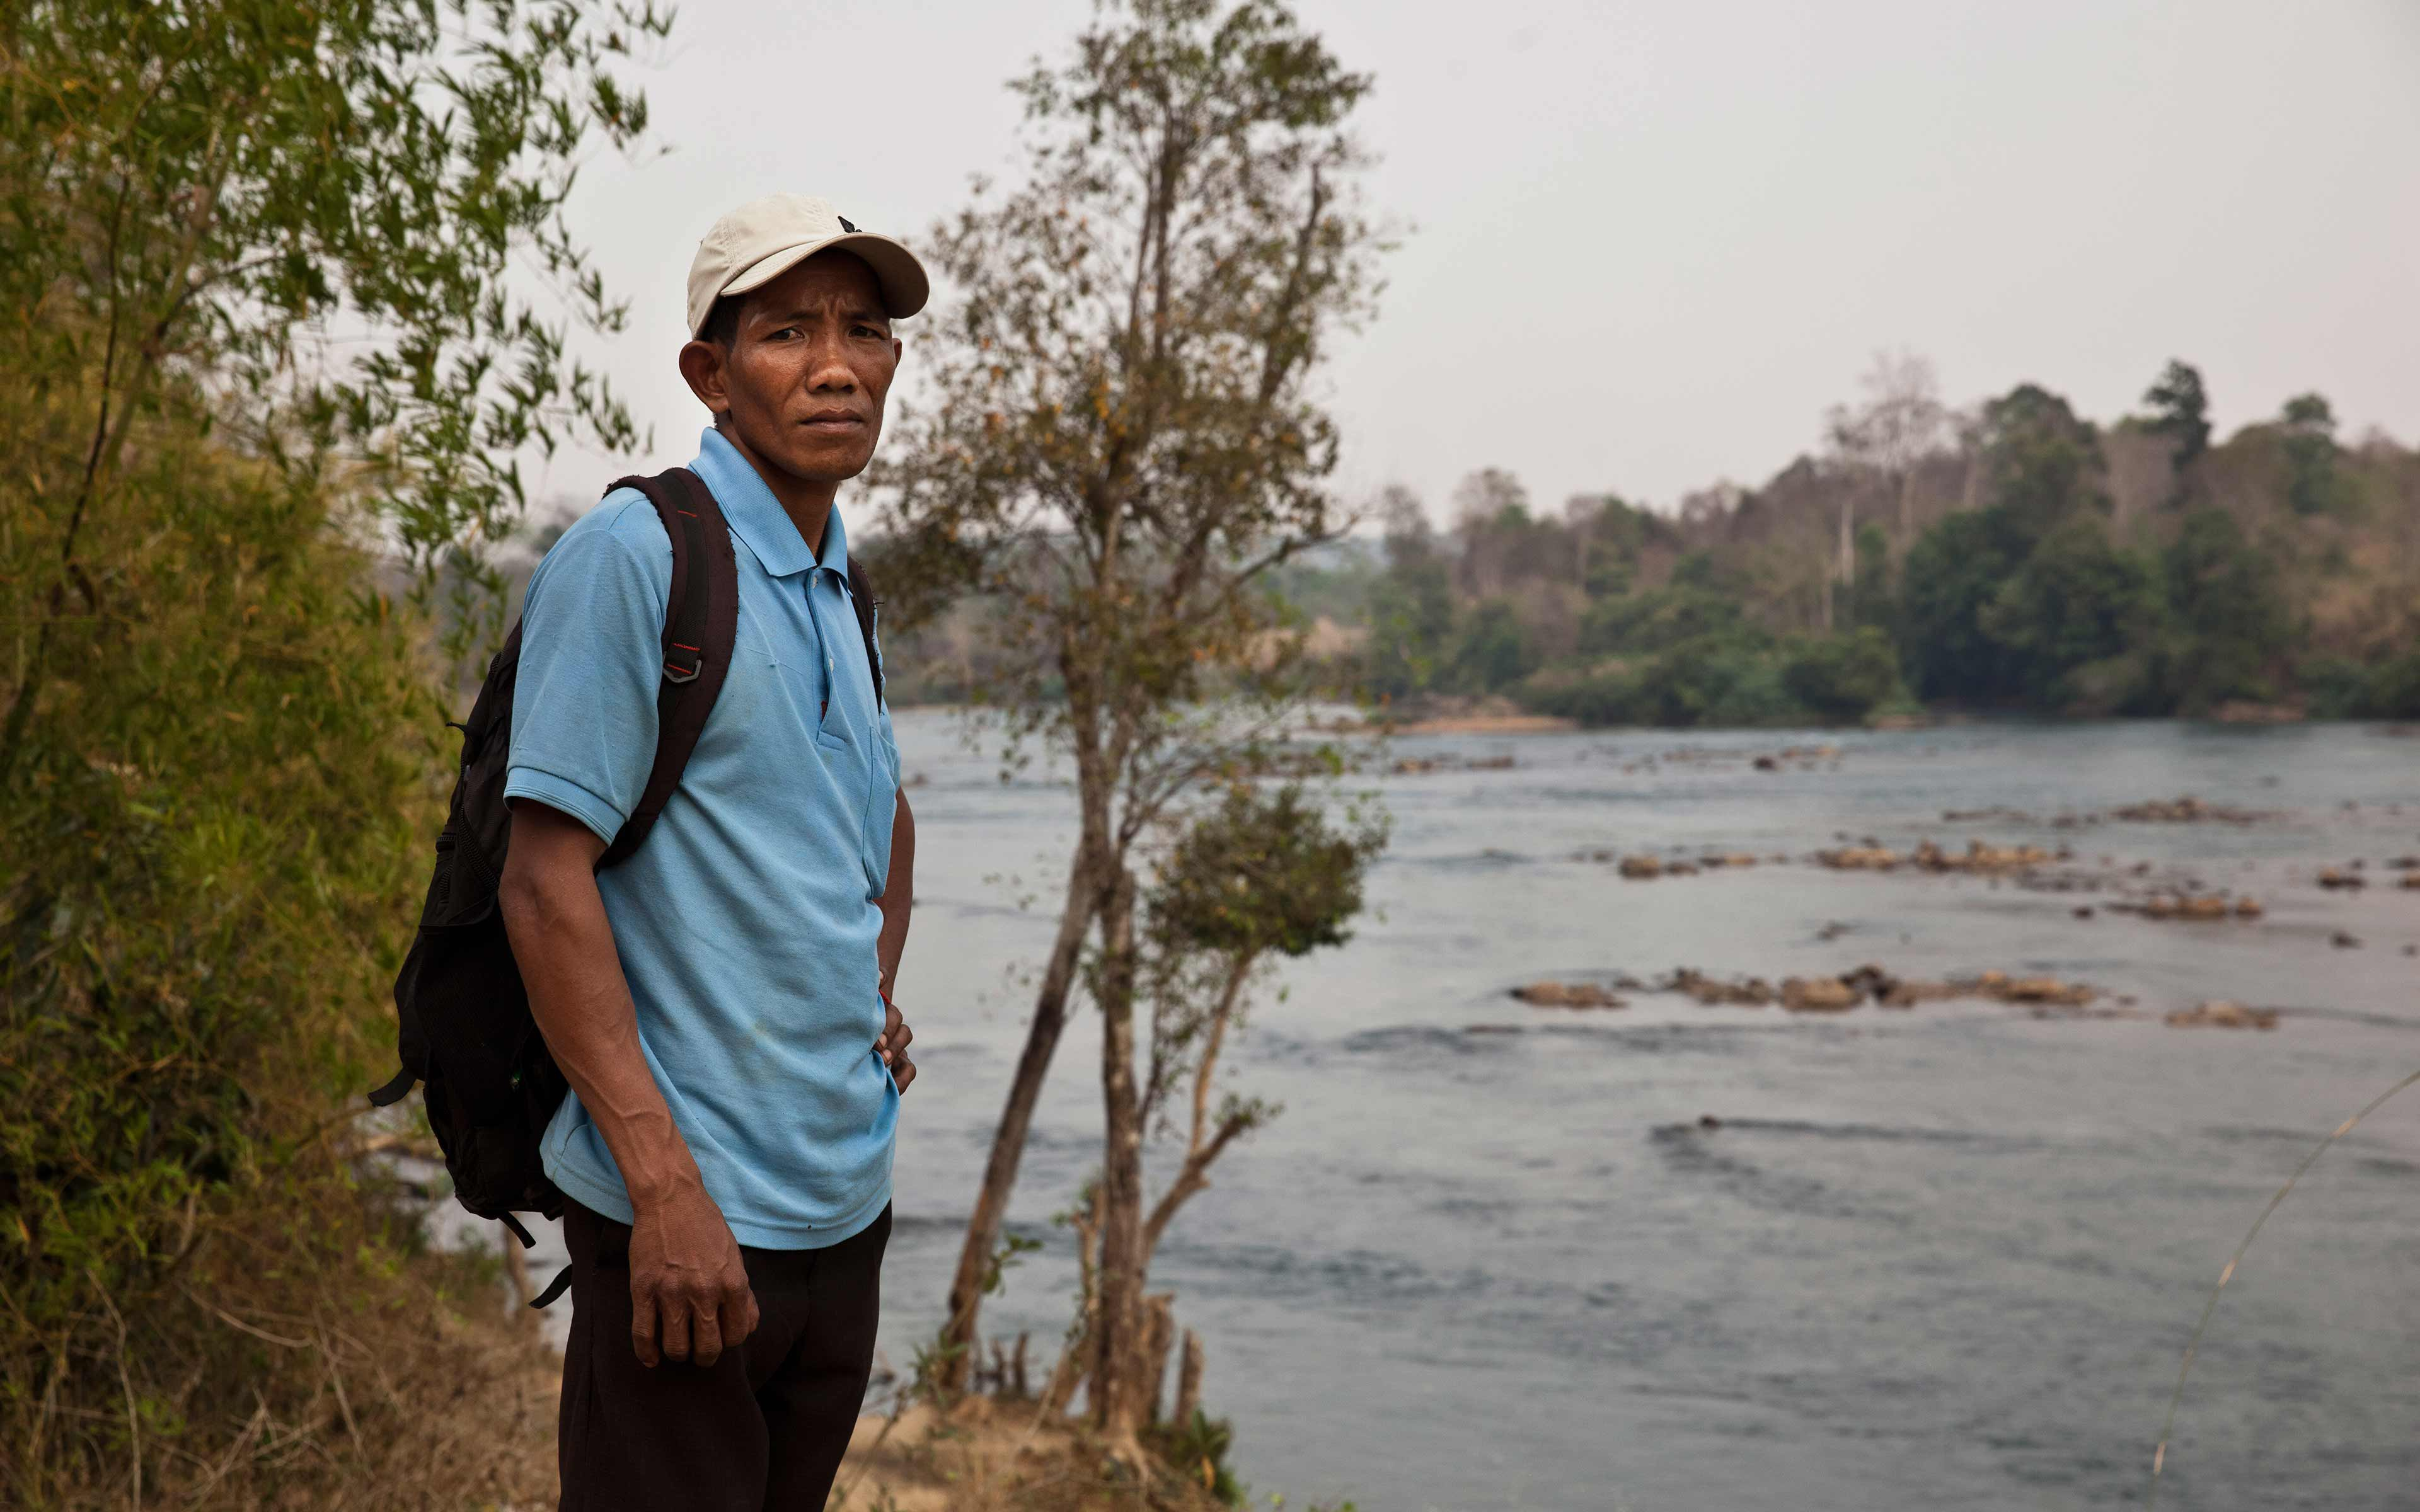 Sev Leam is the deputy chief of Phi village in Cambodia's northern Ratanakiri province. He says his ethnic Jarai community filed to get a communal land title in 2011, and is still waiting for the government to survey Phi's lands and issue their title.